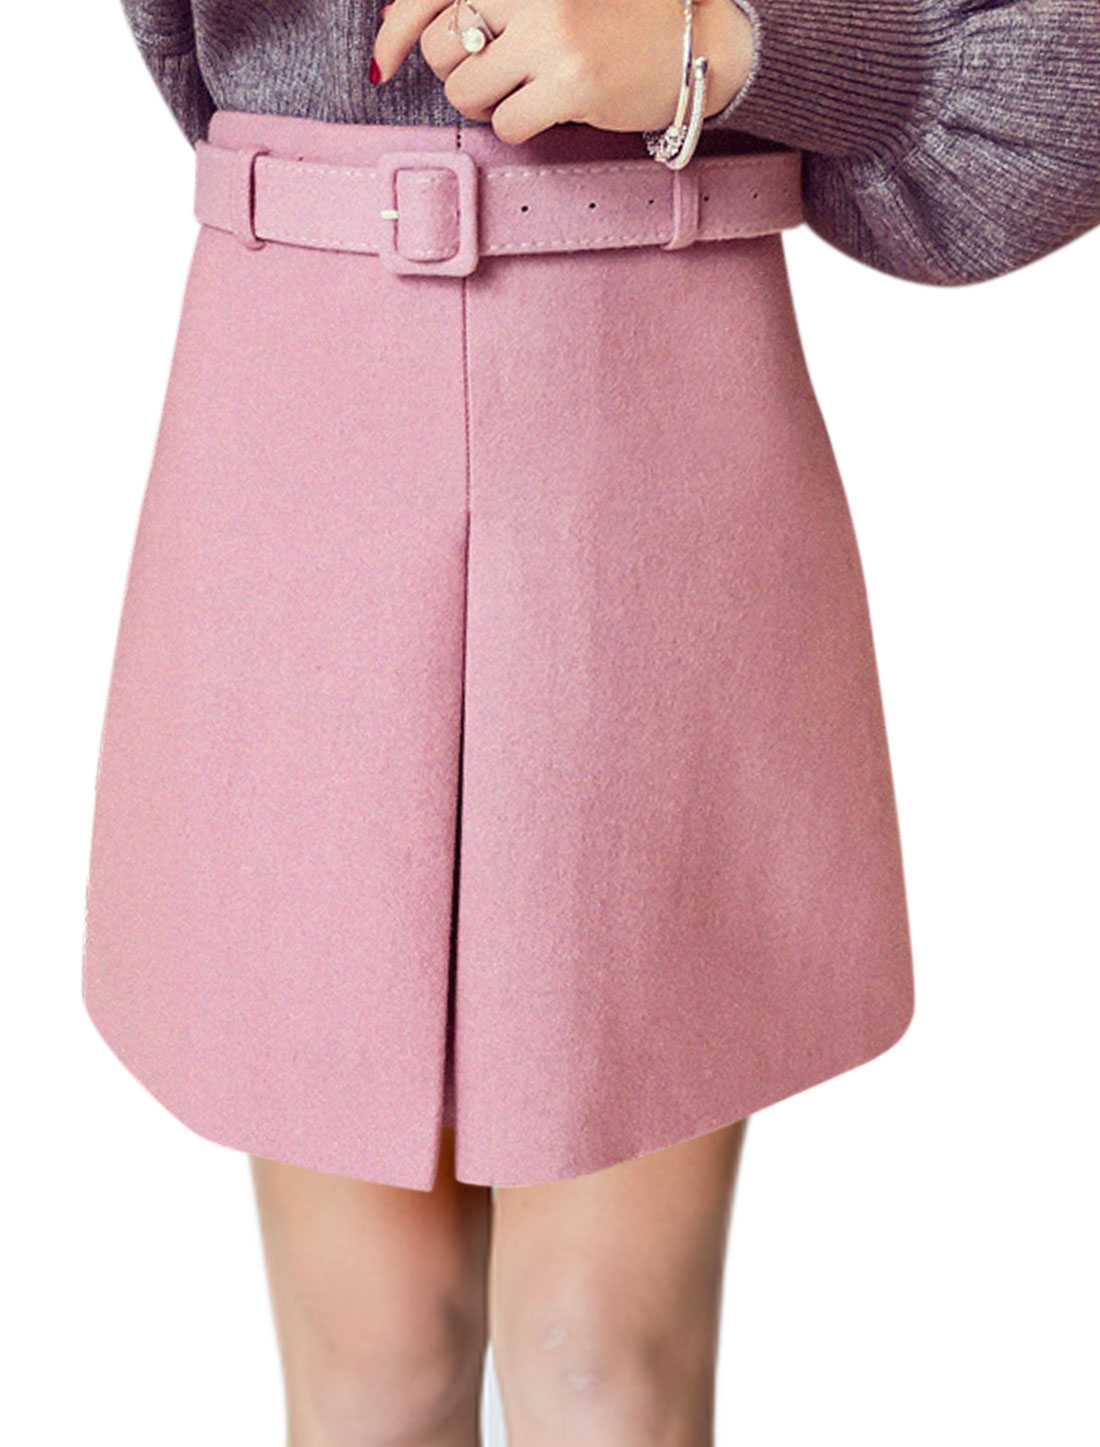 Women High Rise Layered Front Mini Worsted A Line Skirt w Belt Pink L